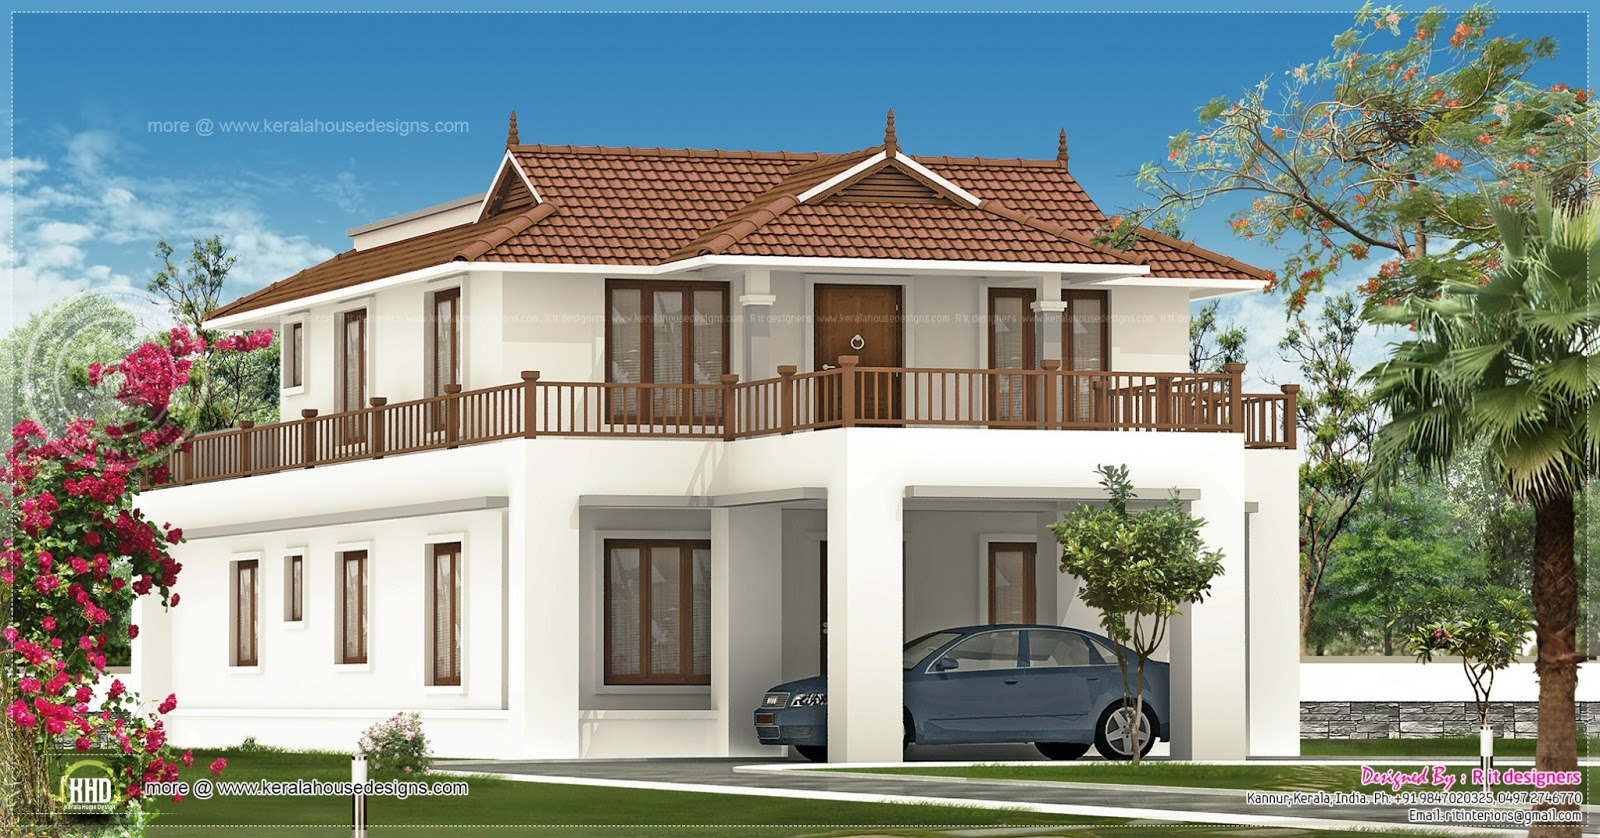 2820 square feet house exterior design home kerala plans for What is exterior design